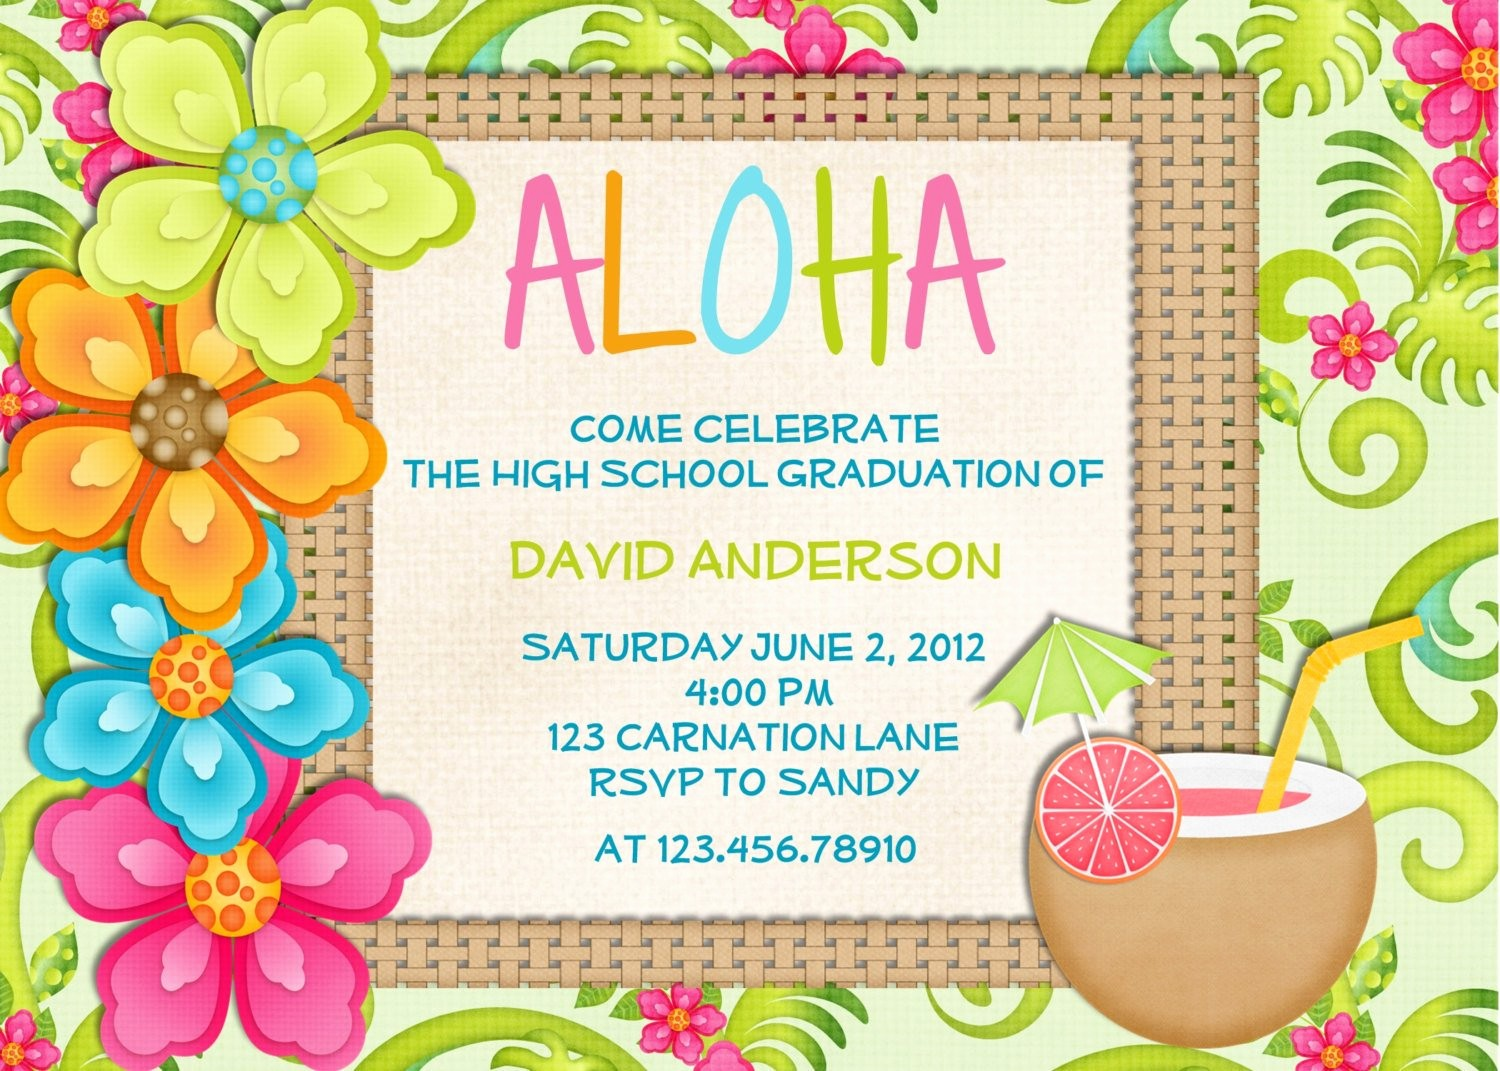 Hawaiian theme Party Invitations Printable Awesome Luau Birthday Invitation Sweet 16 Tropical Hawaiian Hula Party